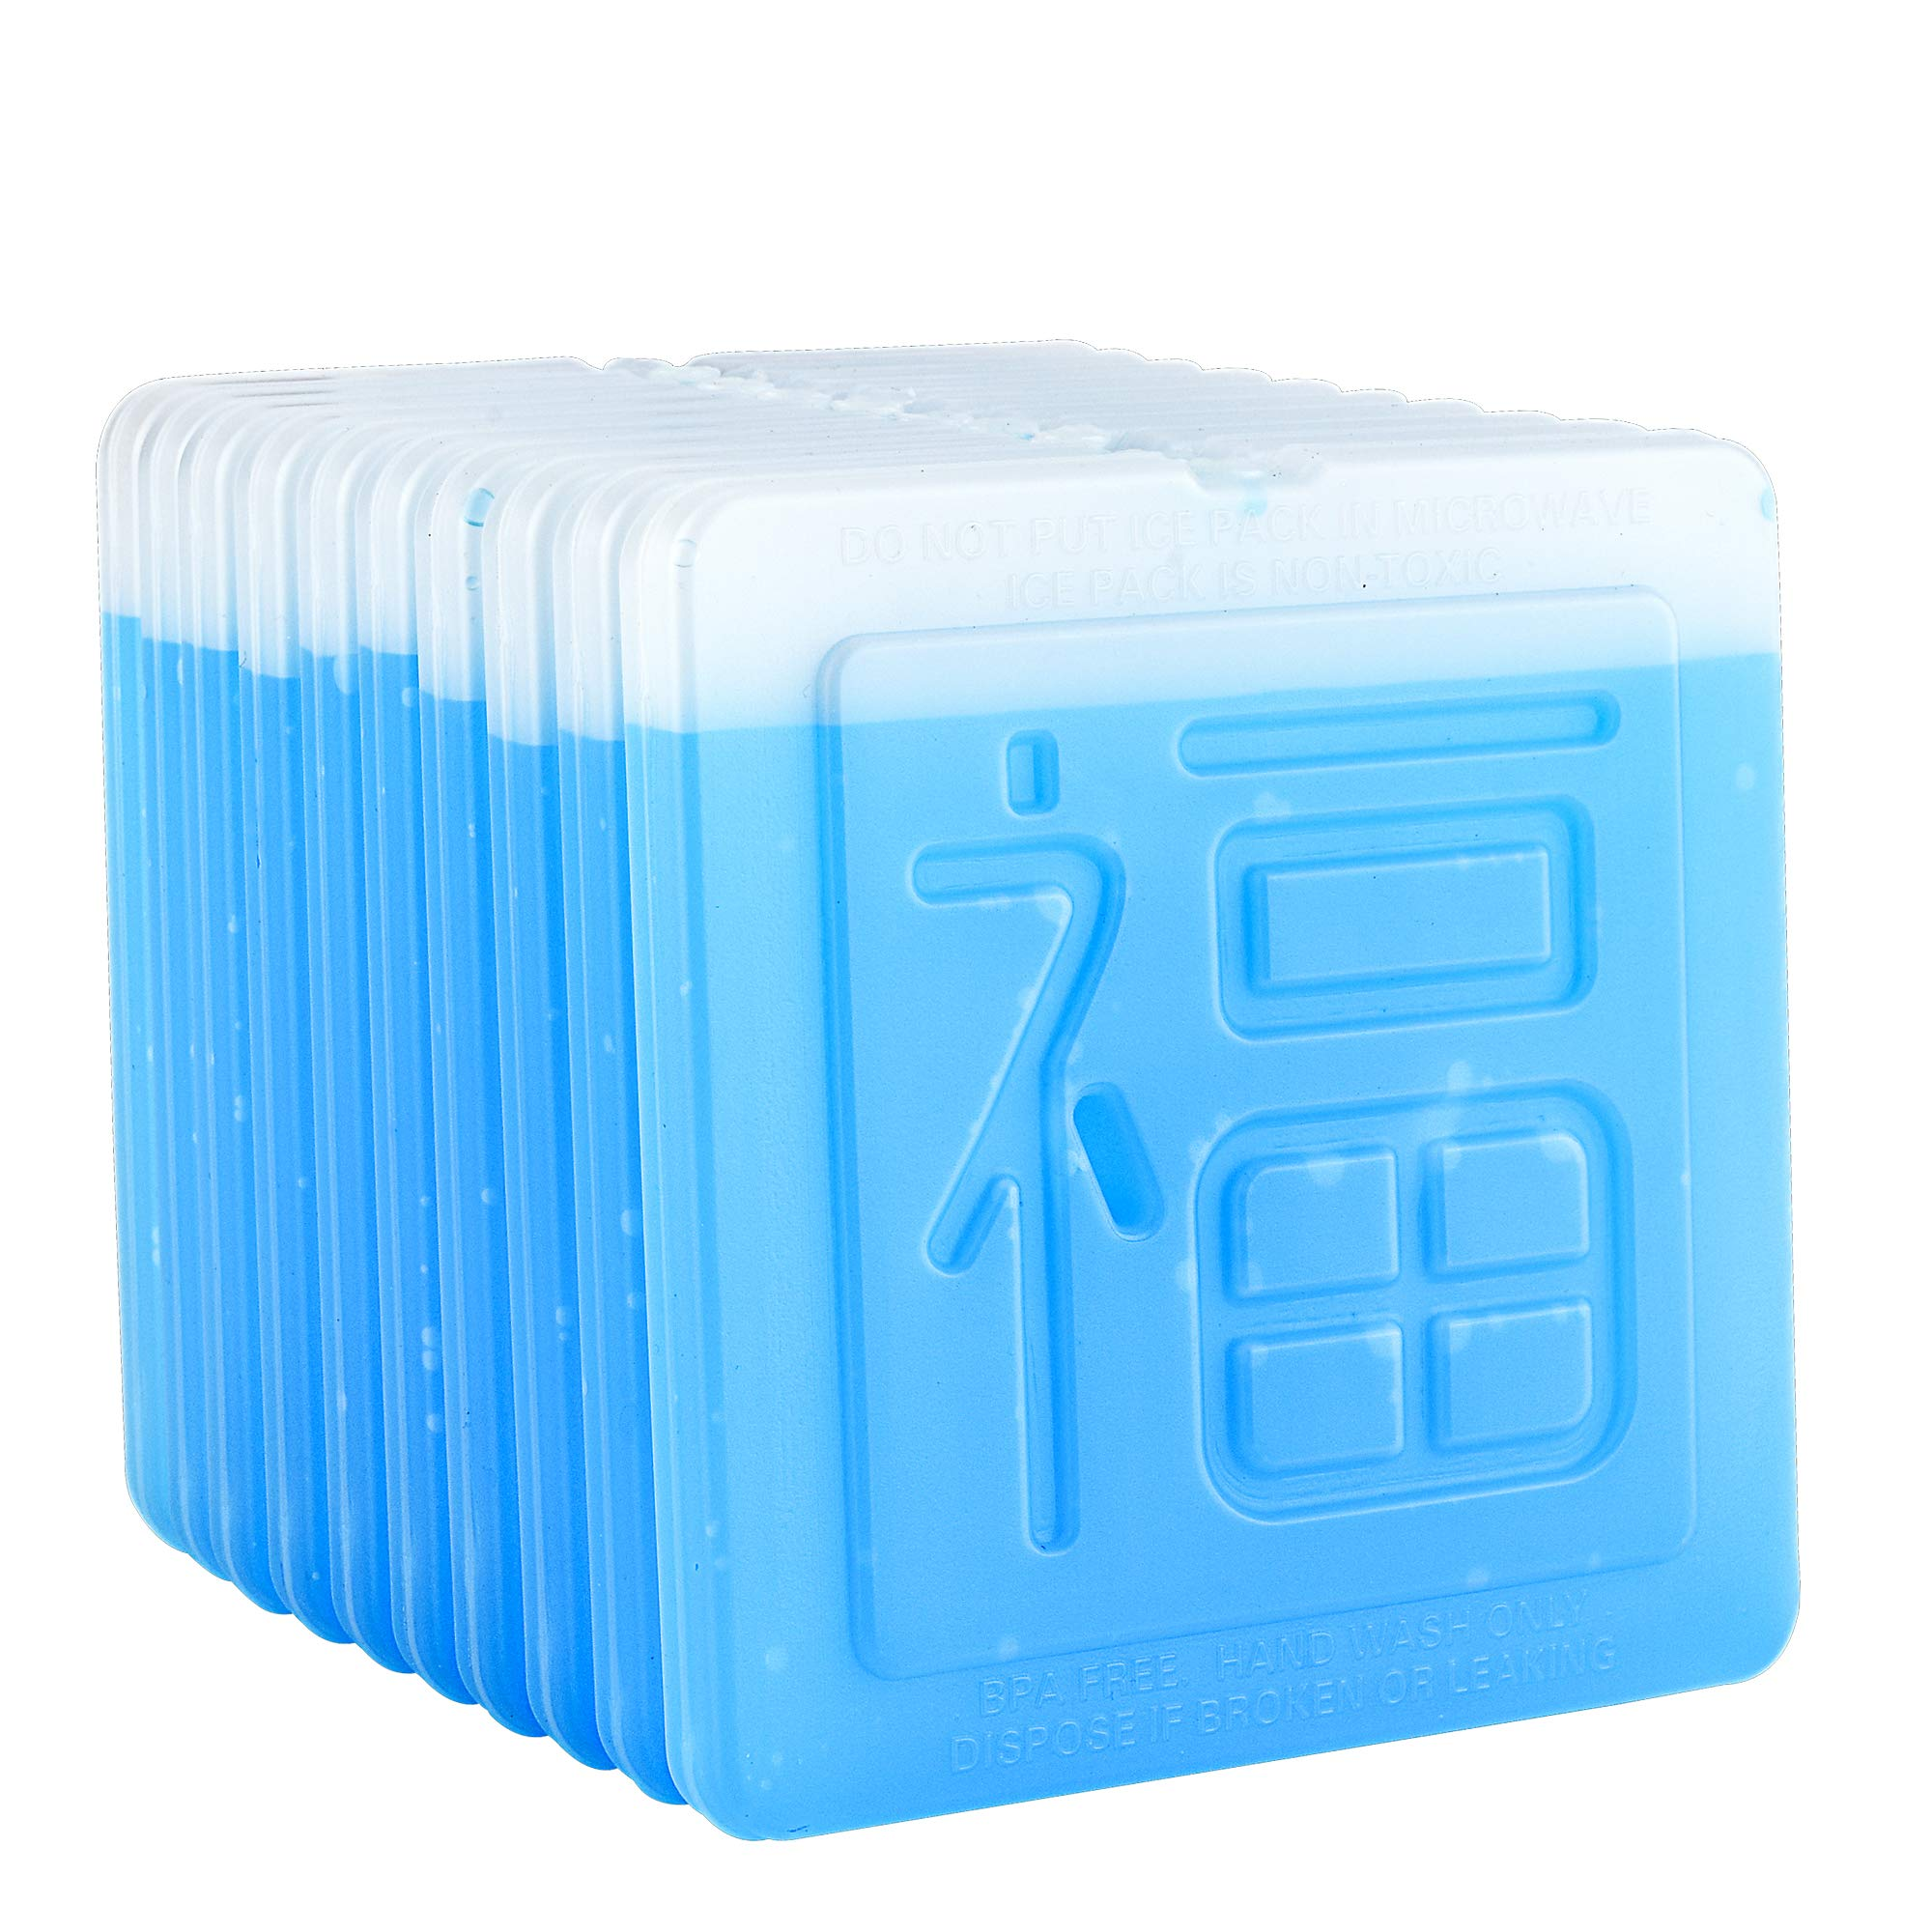 OICEPACK Ice Packs (set of 10) Ice Packs for Lunch Box Ice Packs for Cooler Lunch Boxes Cool Packs Thin Flat Ice Packs Fit all Kinds of Lunch boxes